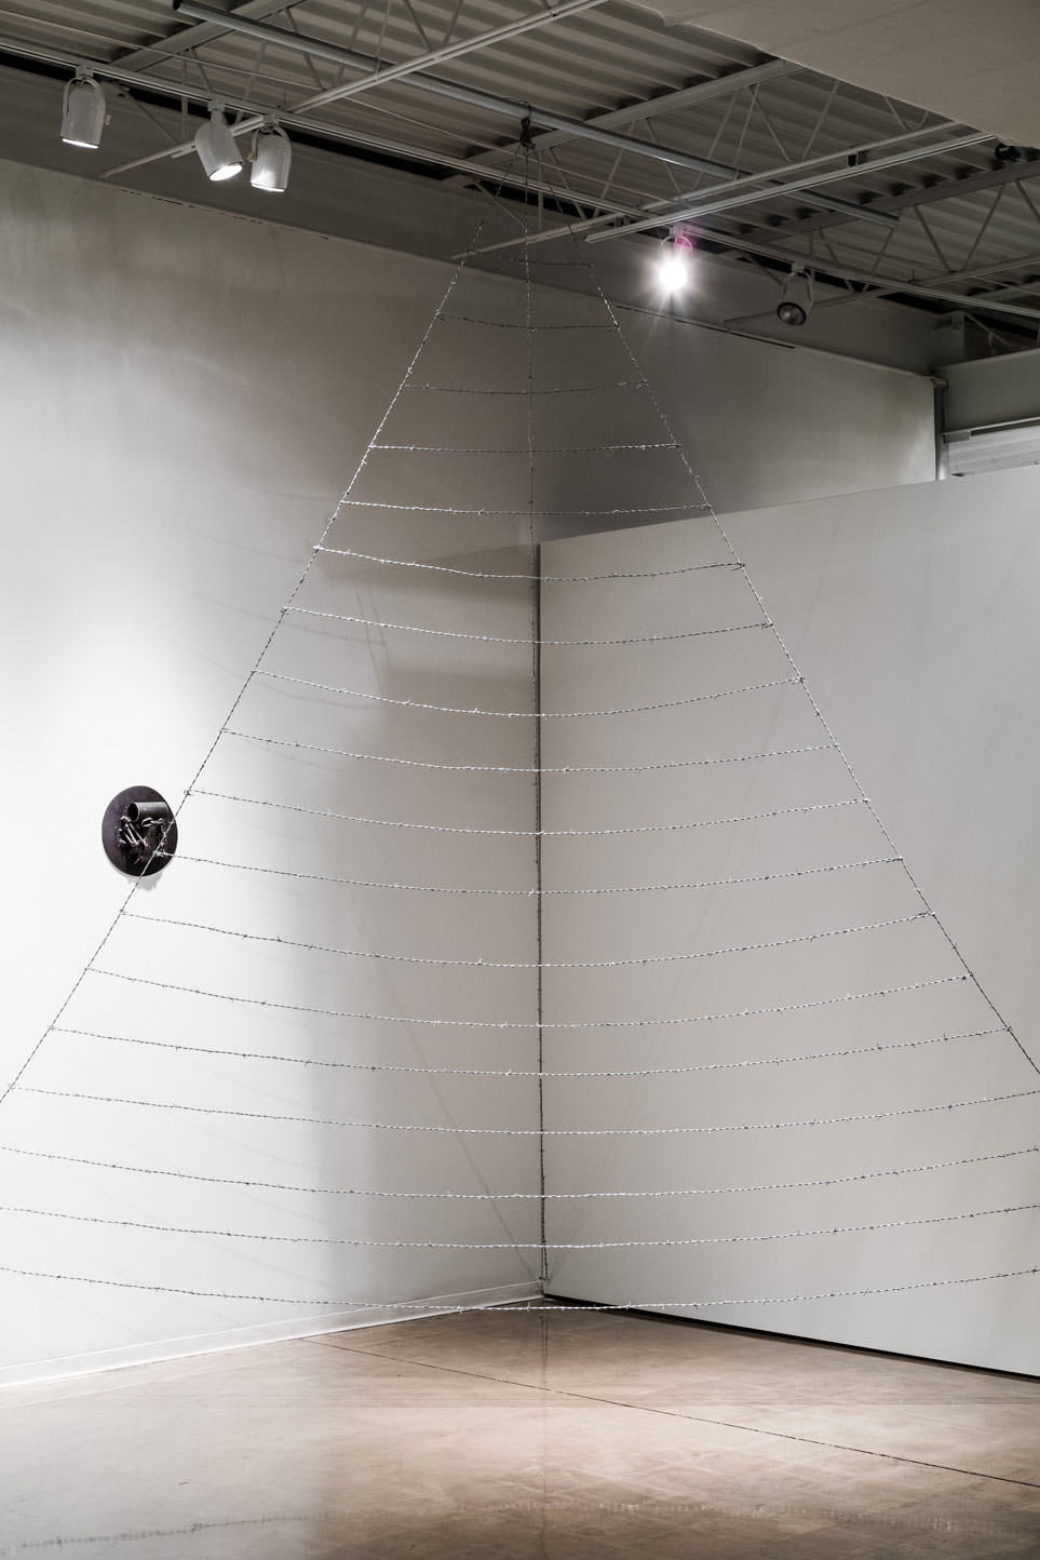 A sculpture of two wires hanging from the ceiling, forming a triangle with 19 horizontal pieces connected across